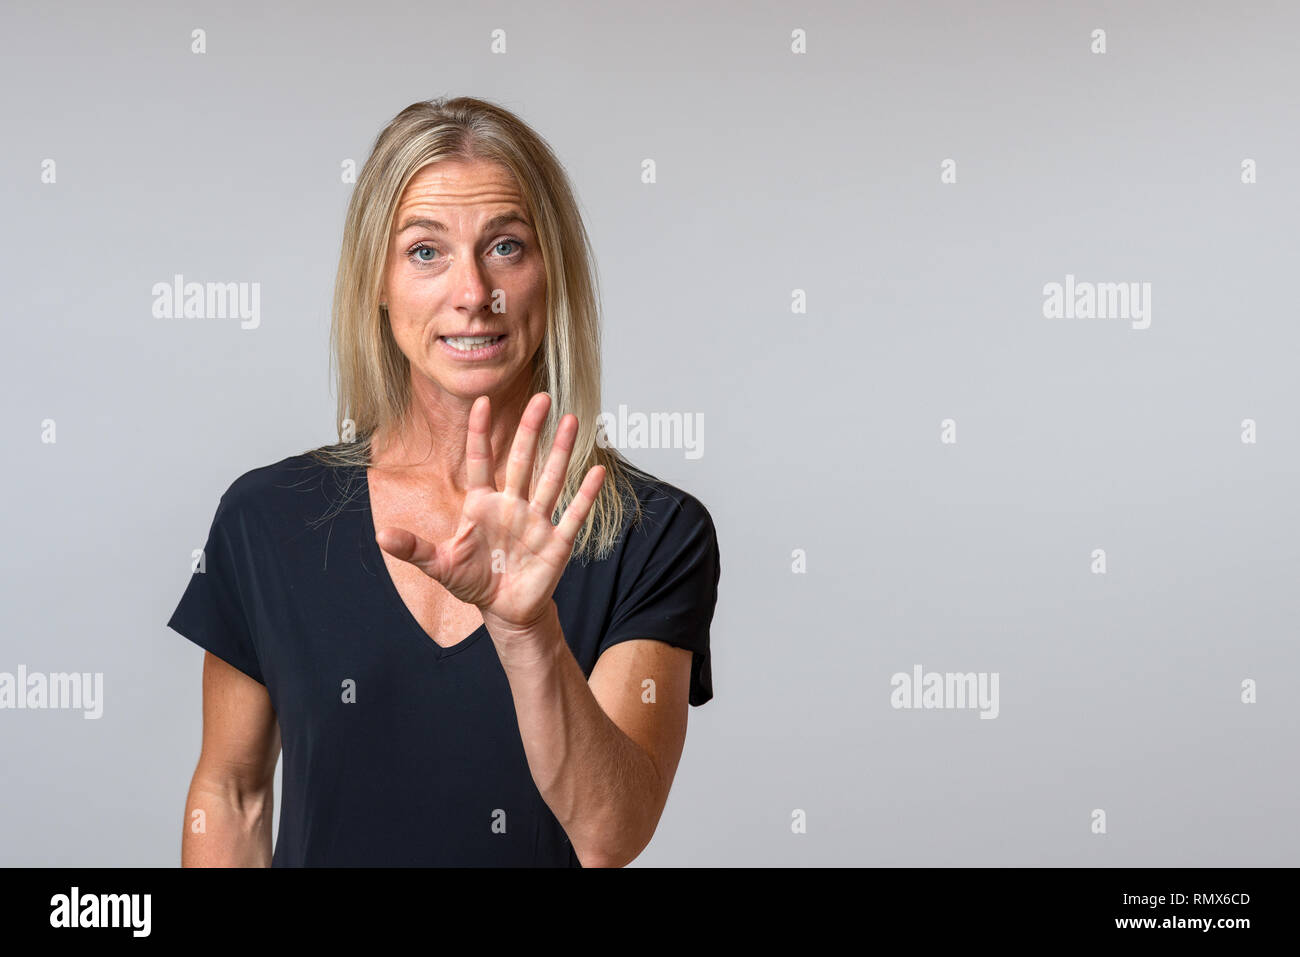 Persuasive vociferous woman speaking and gesturing with her hand in emphasis as she makes a point isolated on grey with copy space - Stock Image